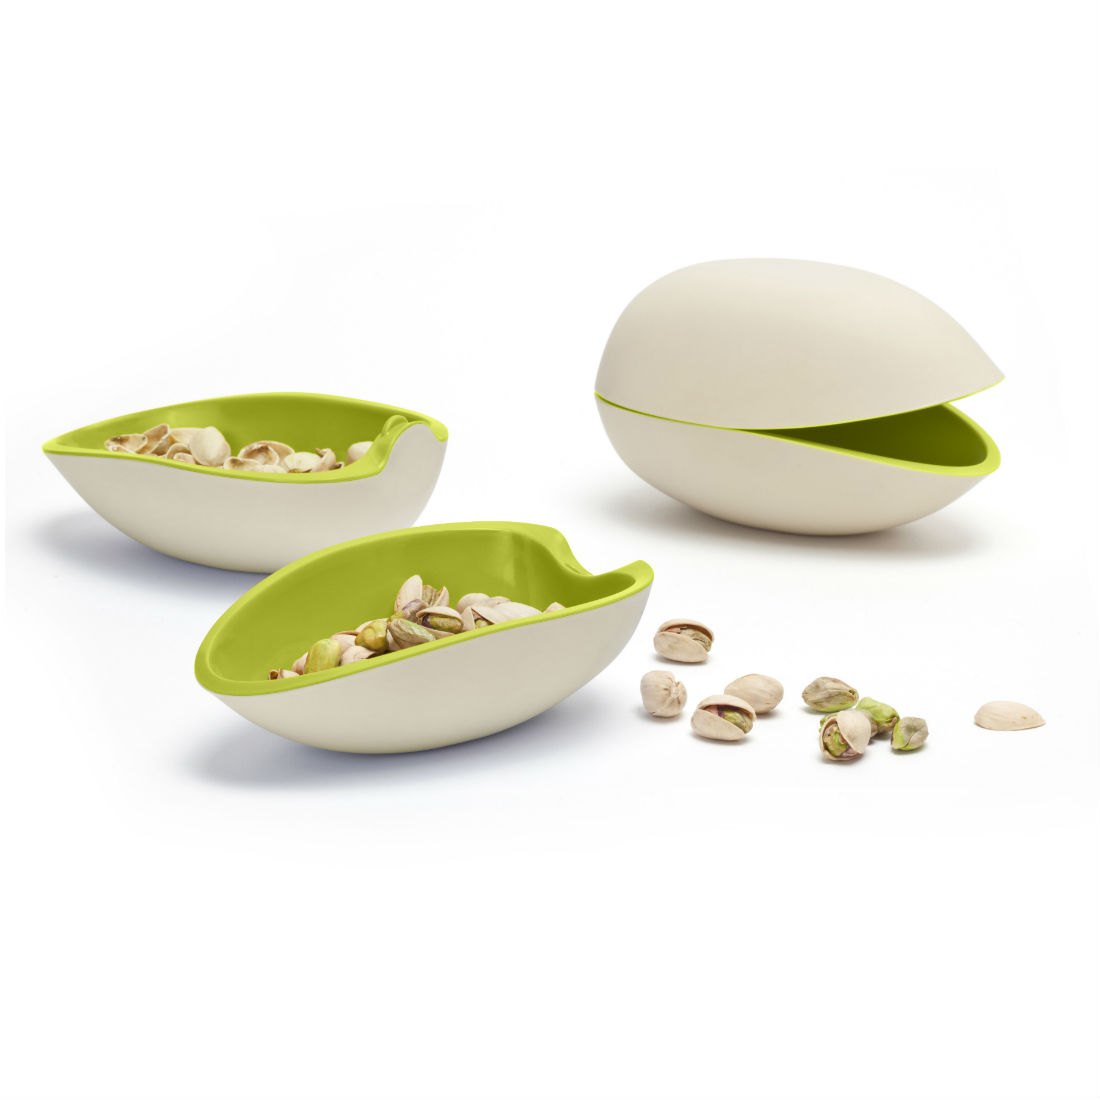 Pistachio Serving Bowls Homeware Furniture And Gifts